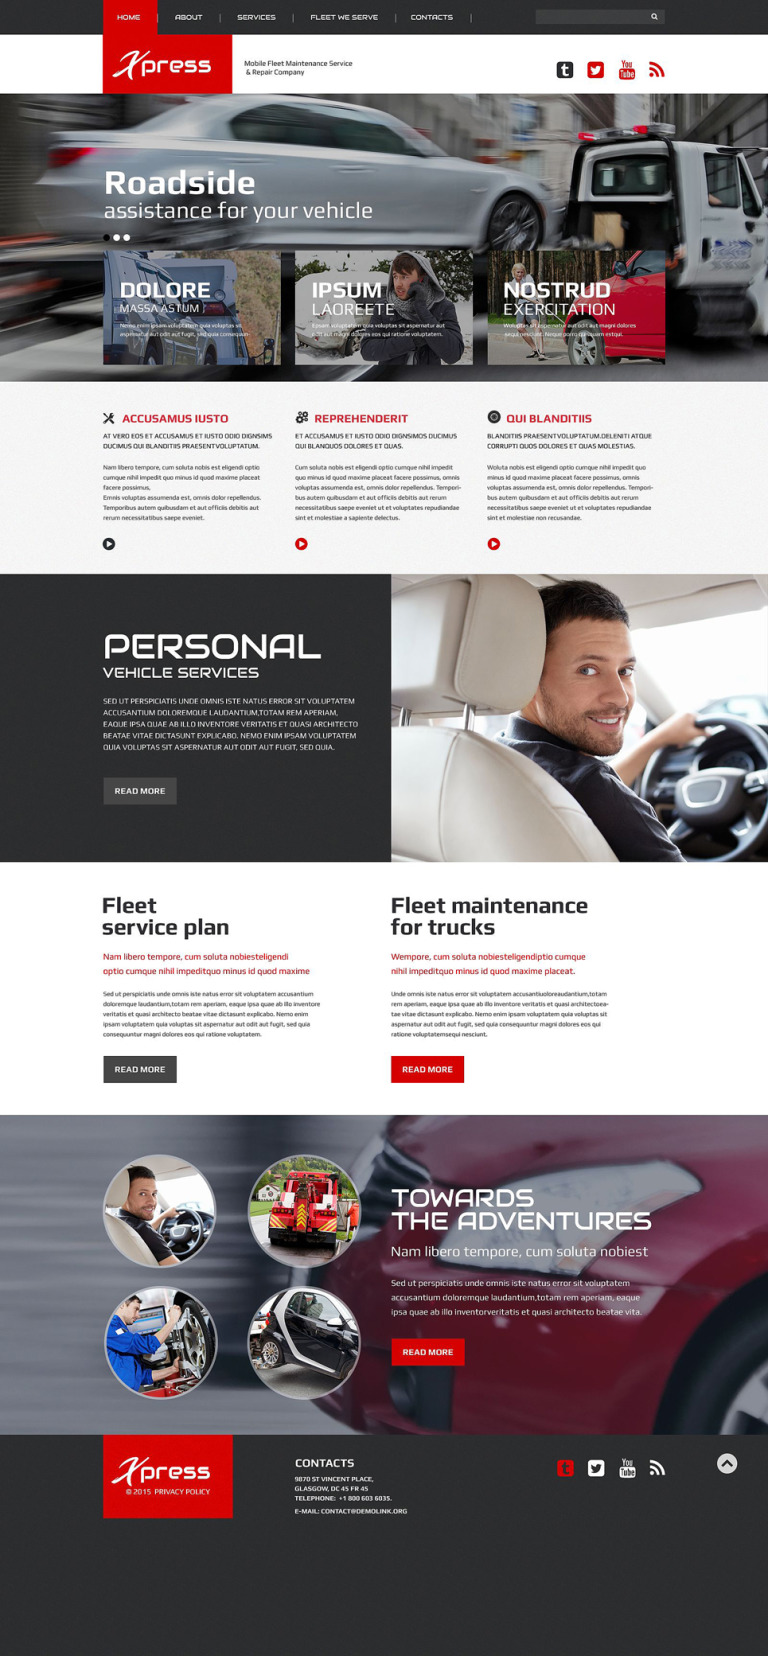 Mobile Repair Service Responsive Website Template New Screenshots BIG